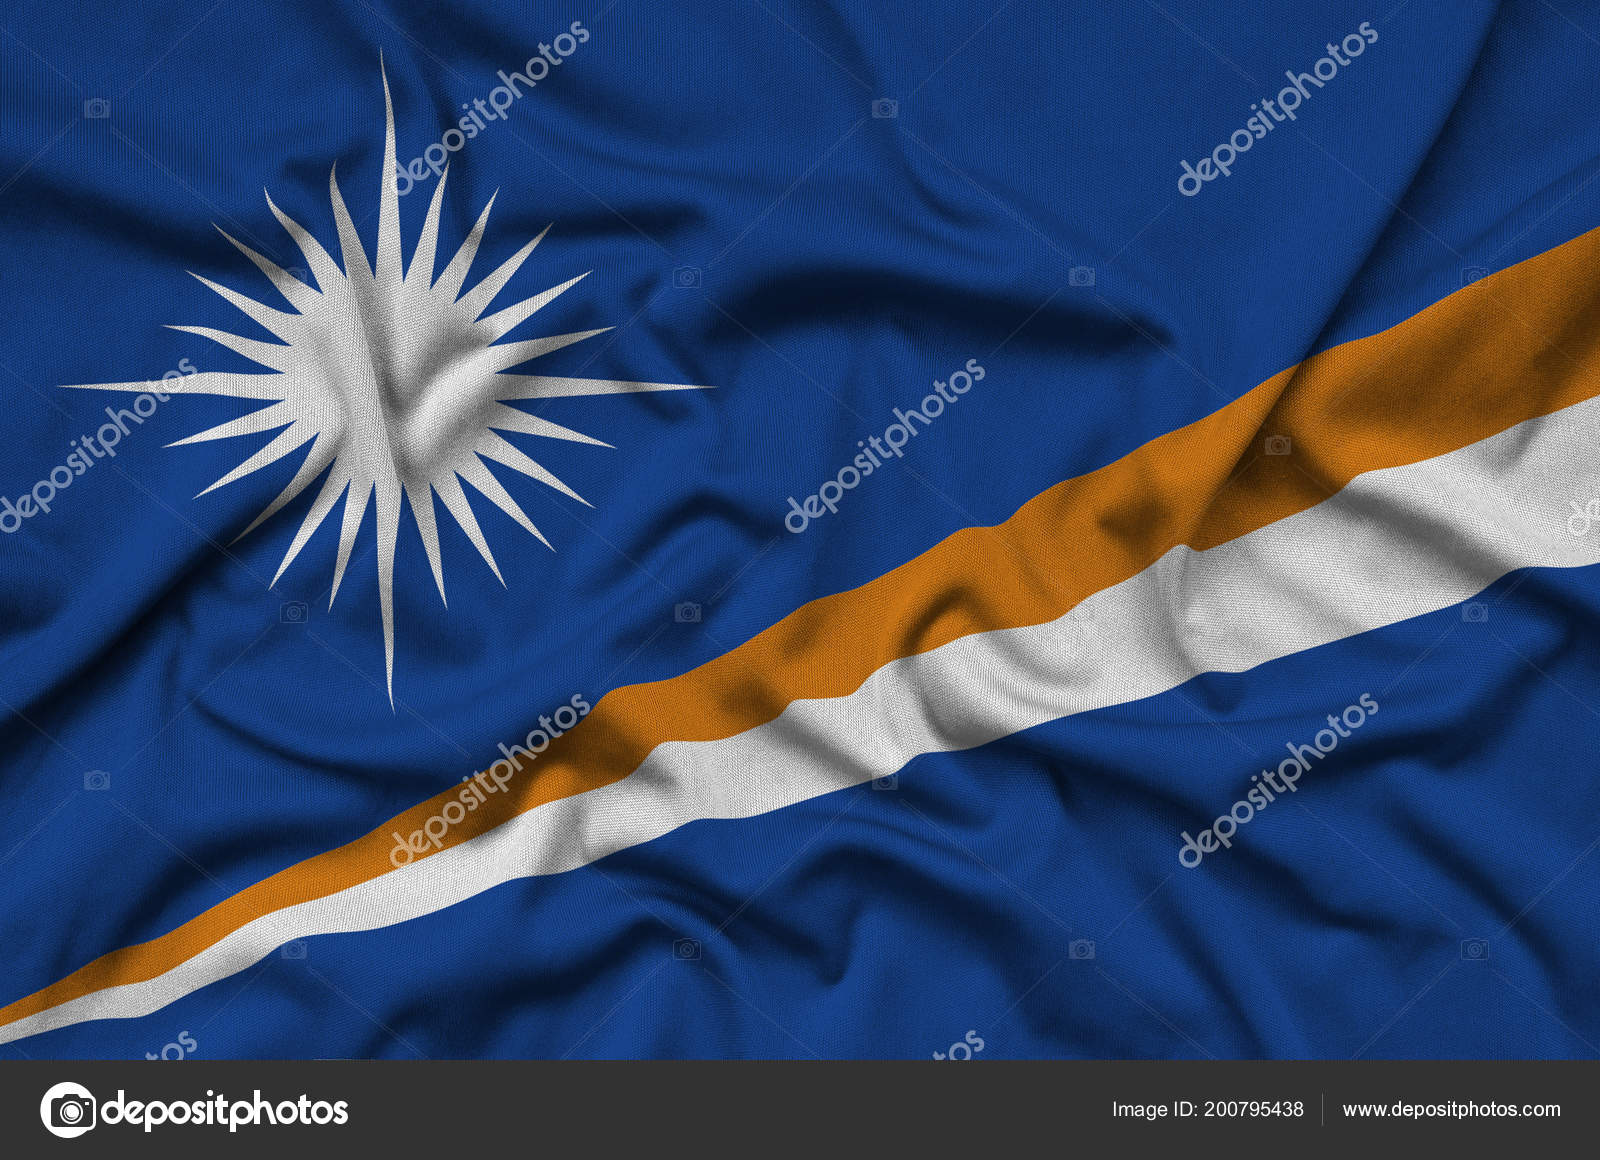 What is depicted on the flag of India and why